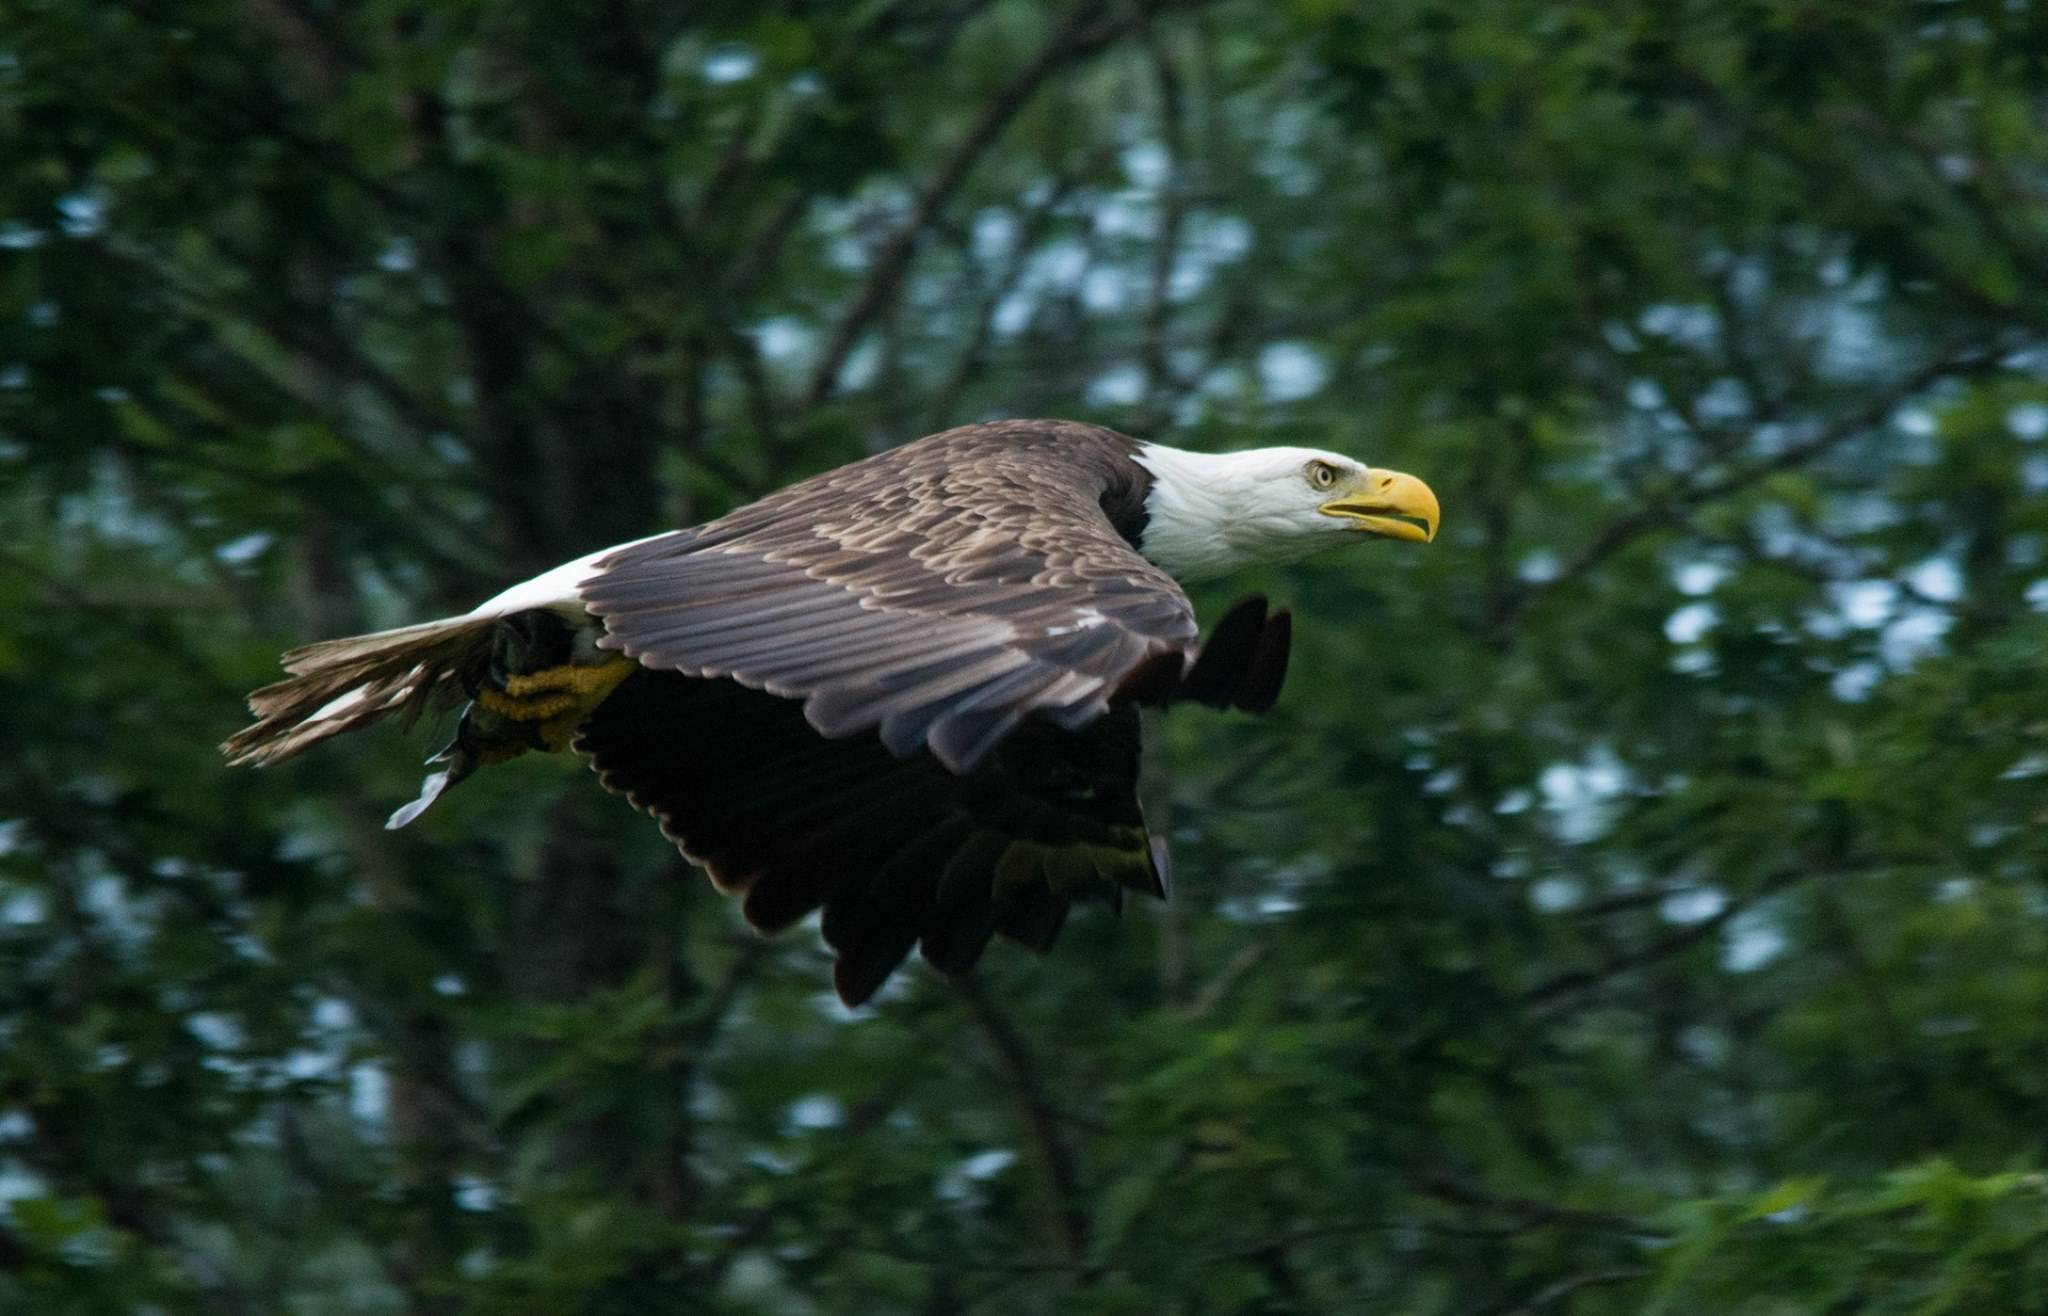 A bald eagle seen in Mooseheart.